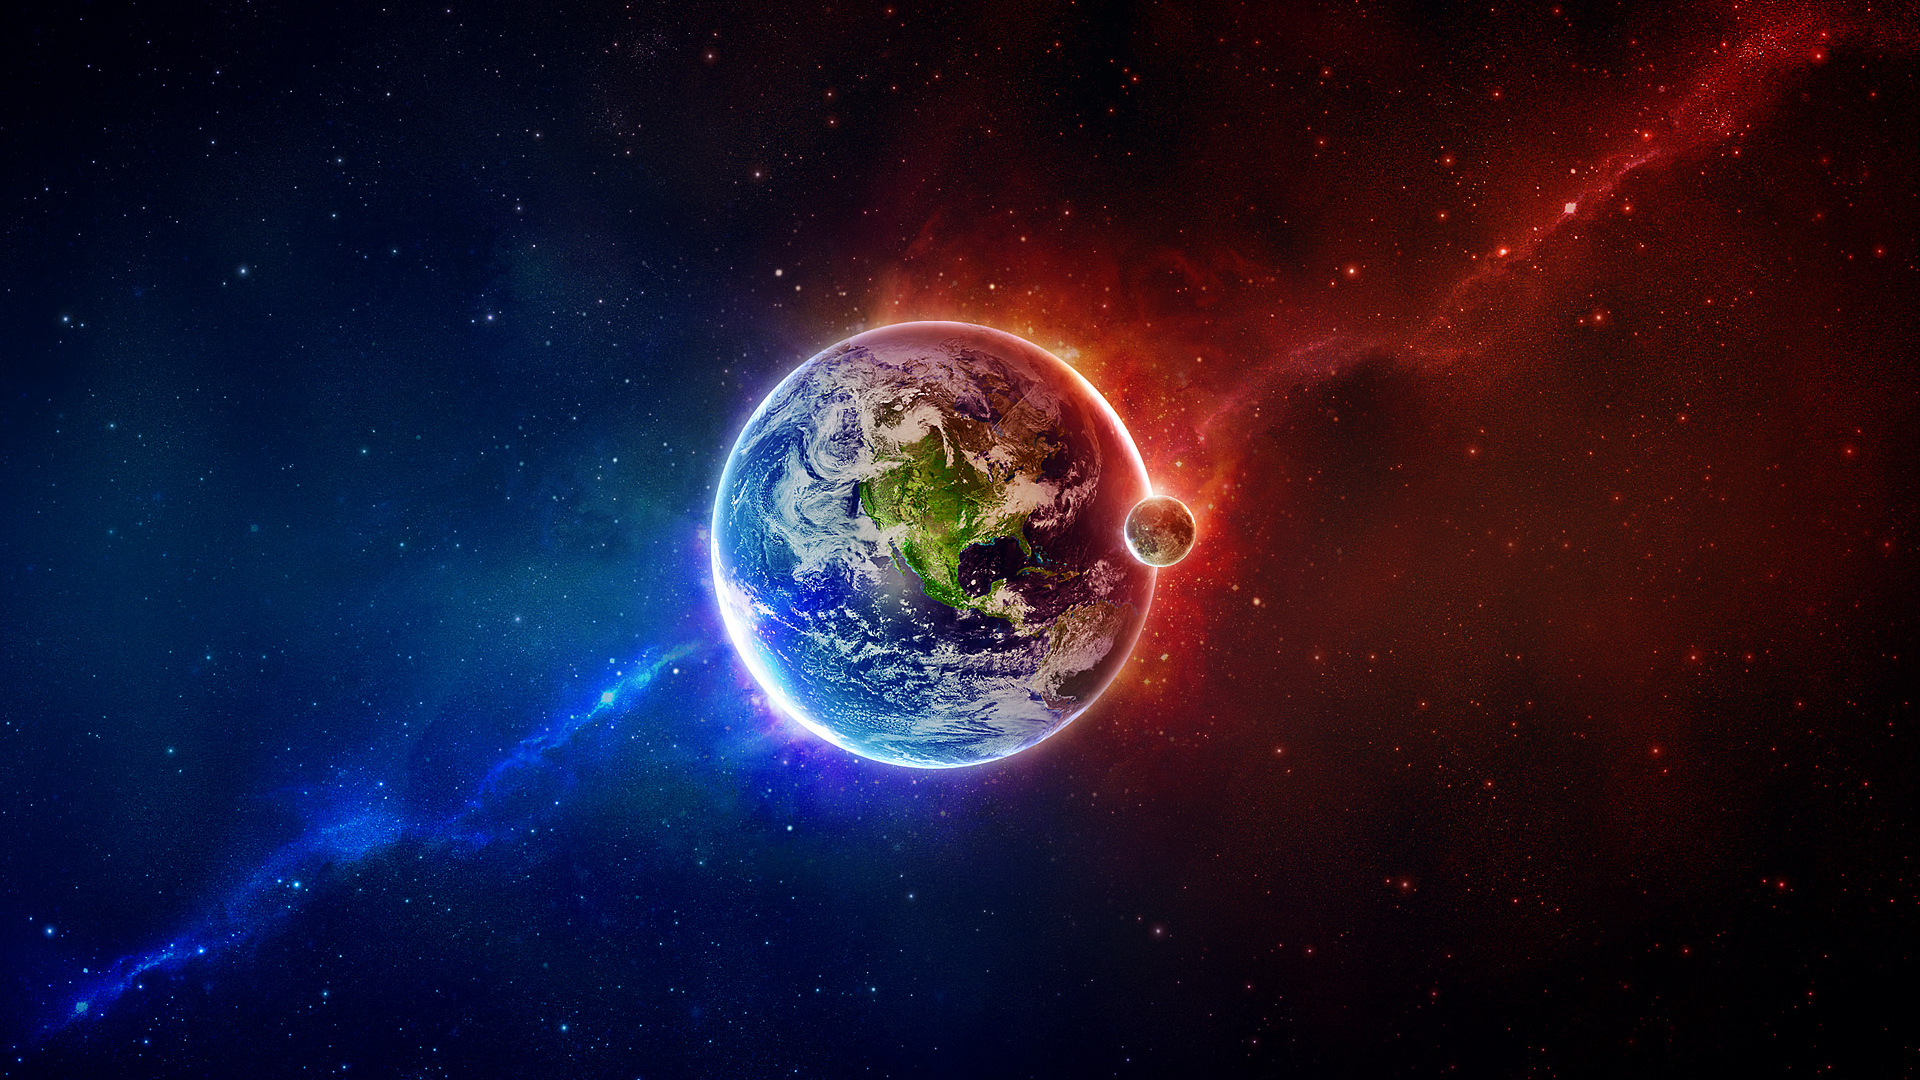 space scene eart blue red earth full hd  wallpapersblogorg 1920x1080